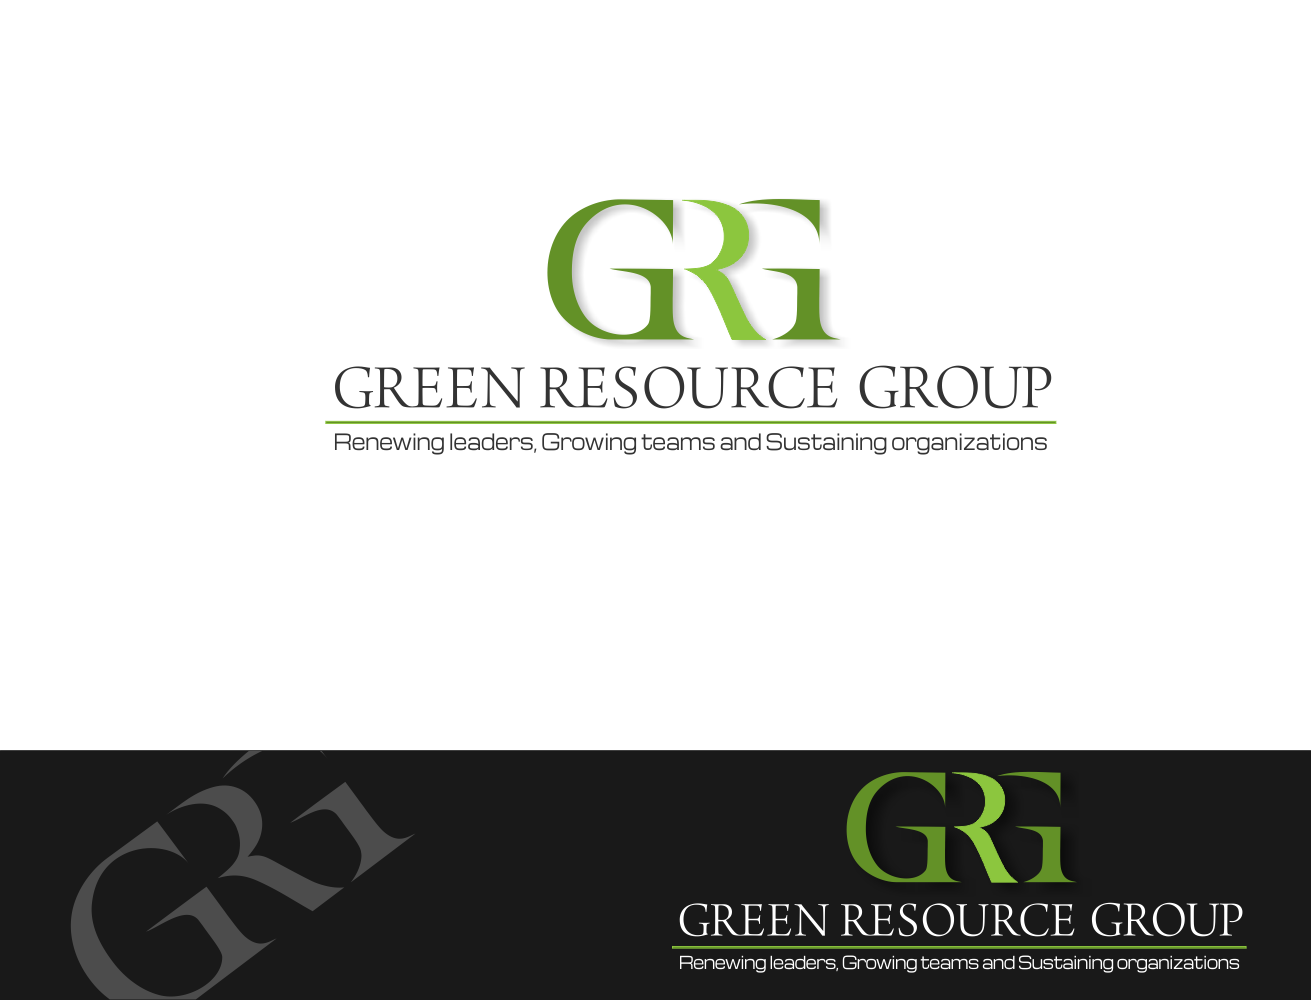 Help Green Resource Group with a new logo